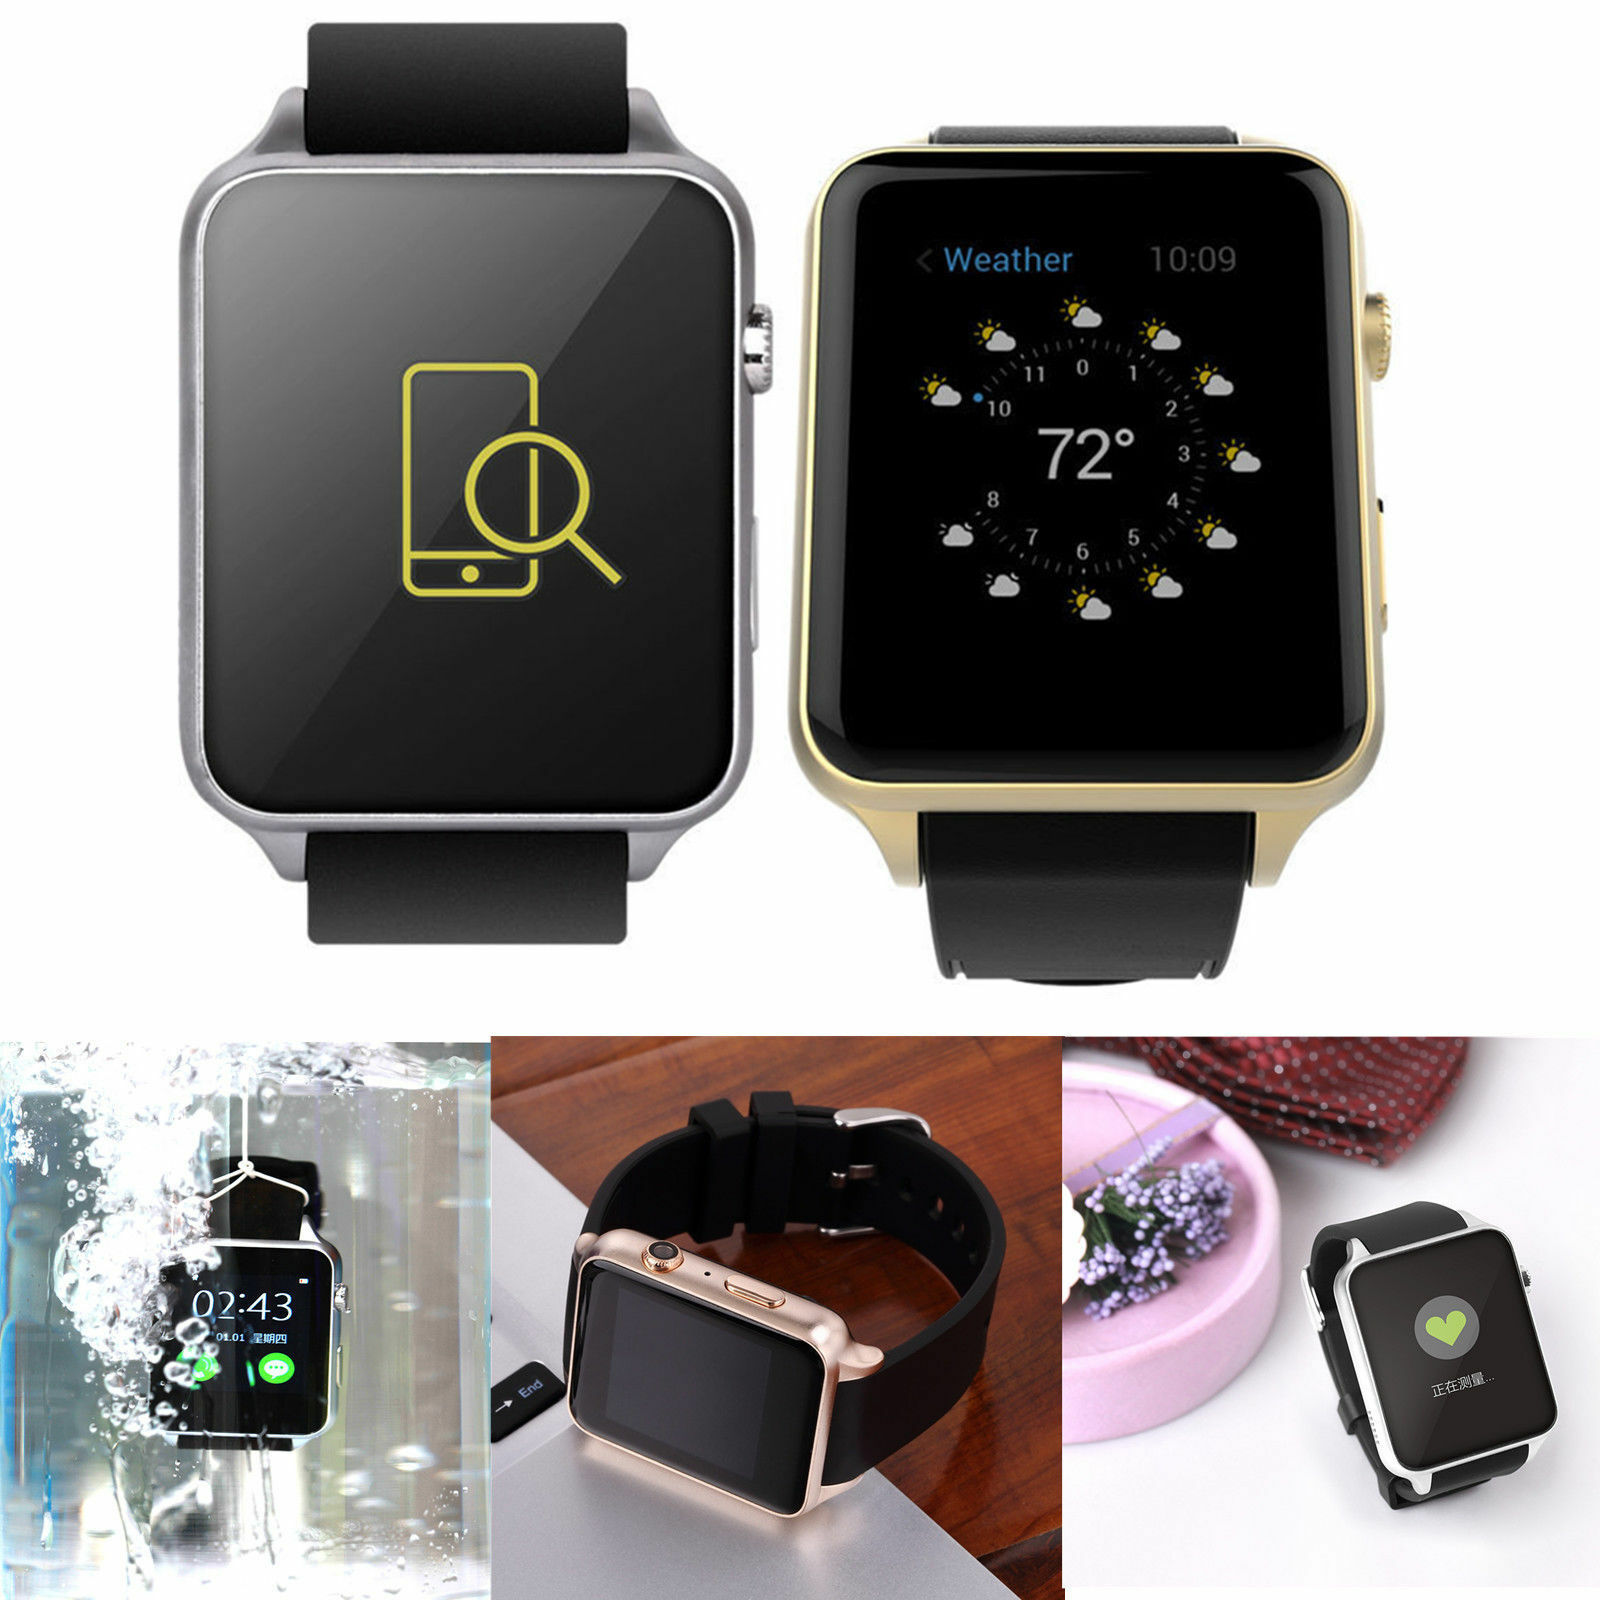 ostensibly for if is one sihh gear a edition apple perhaps brands the two full patrol watches can richemont peacock review native grounds watch three group i show love phone you or of lead trade horological